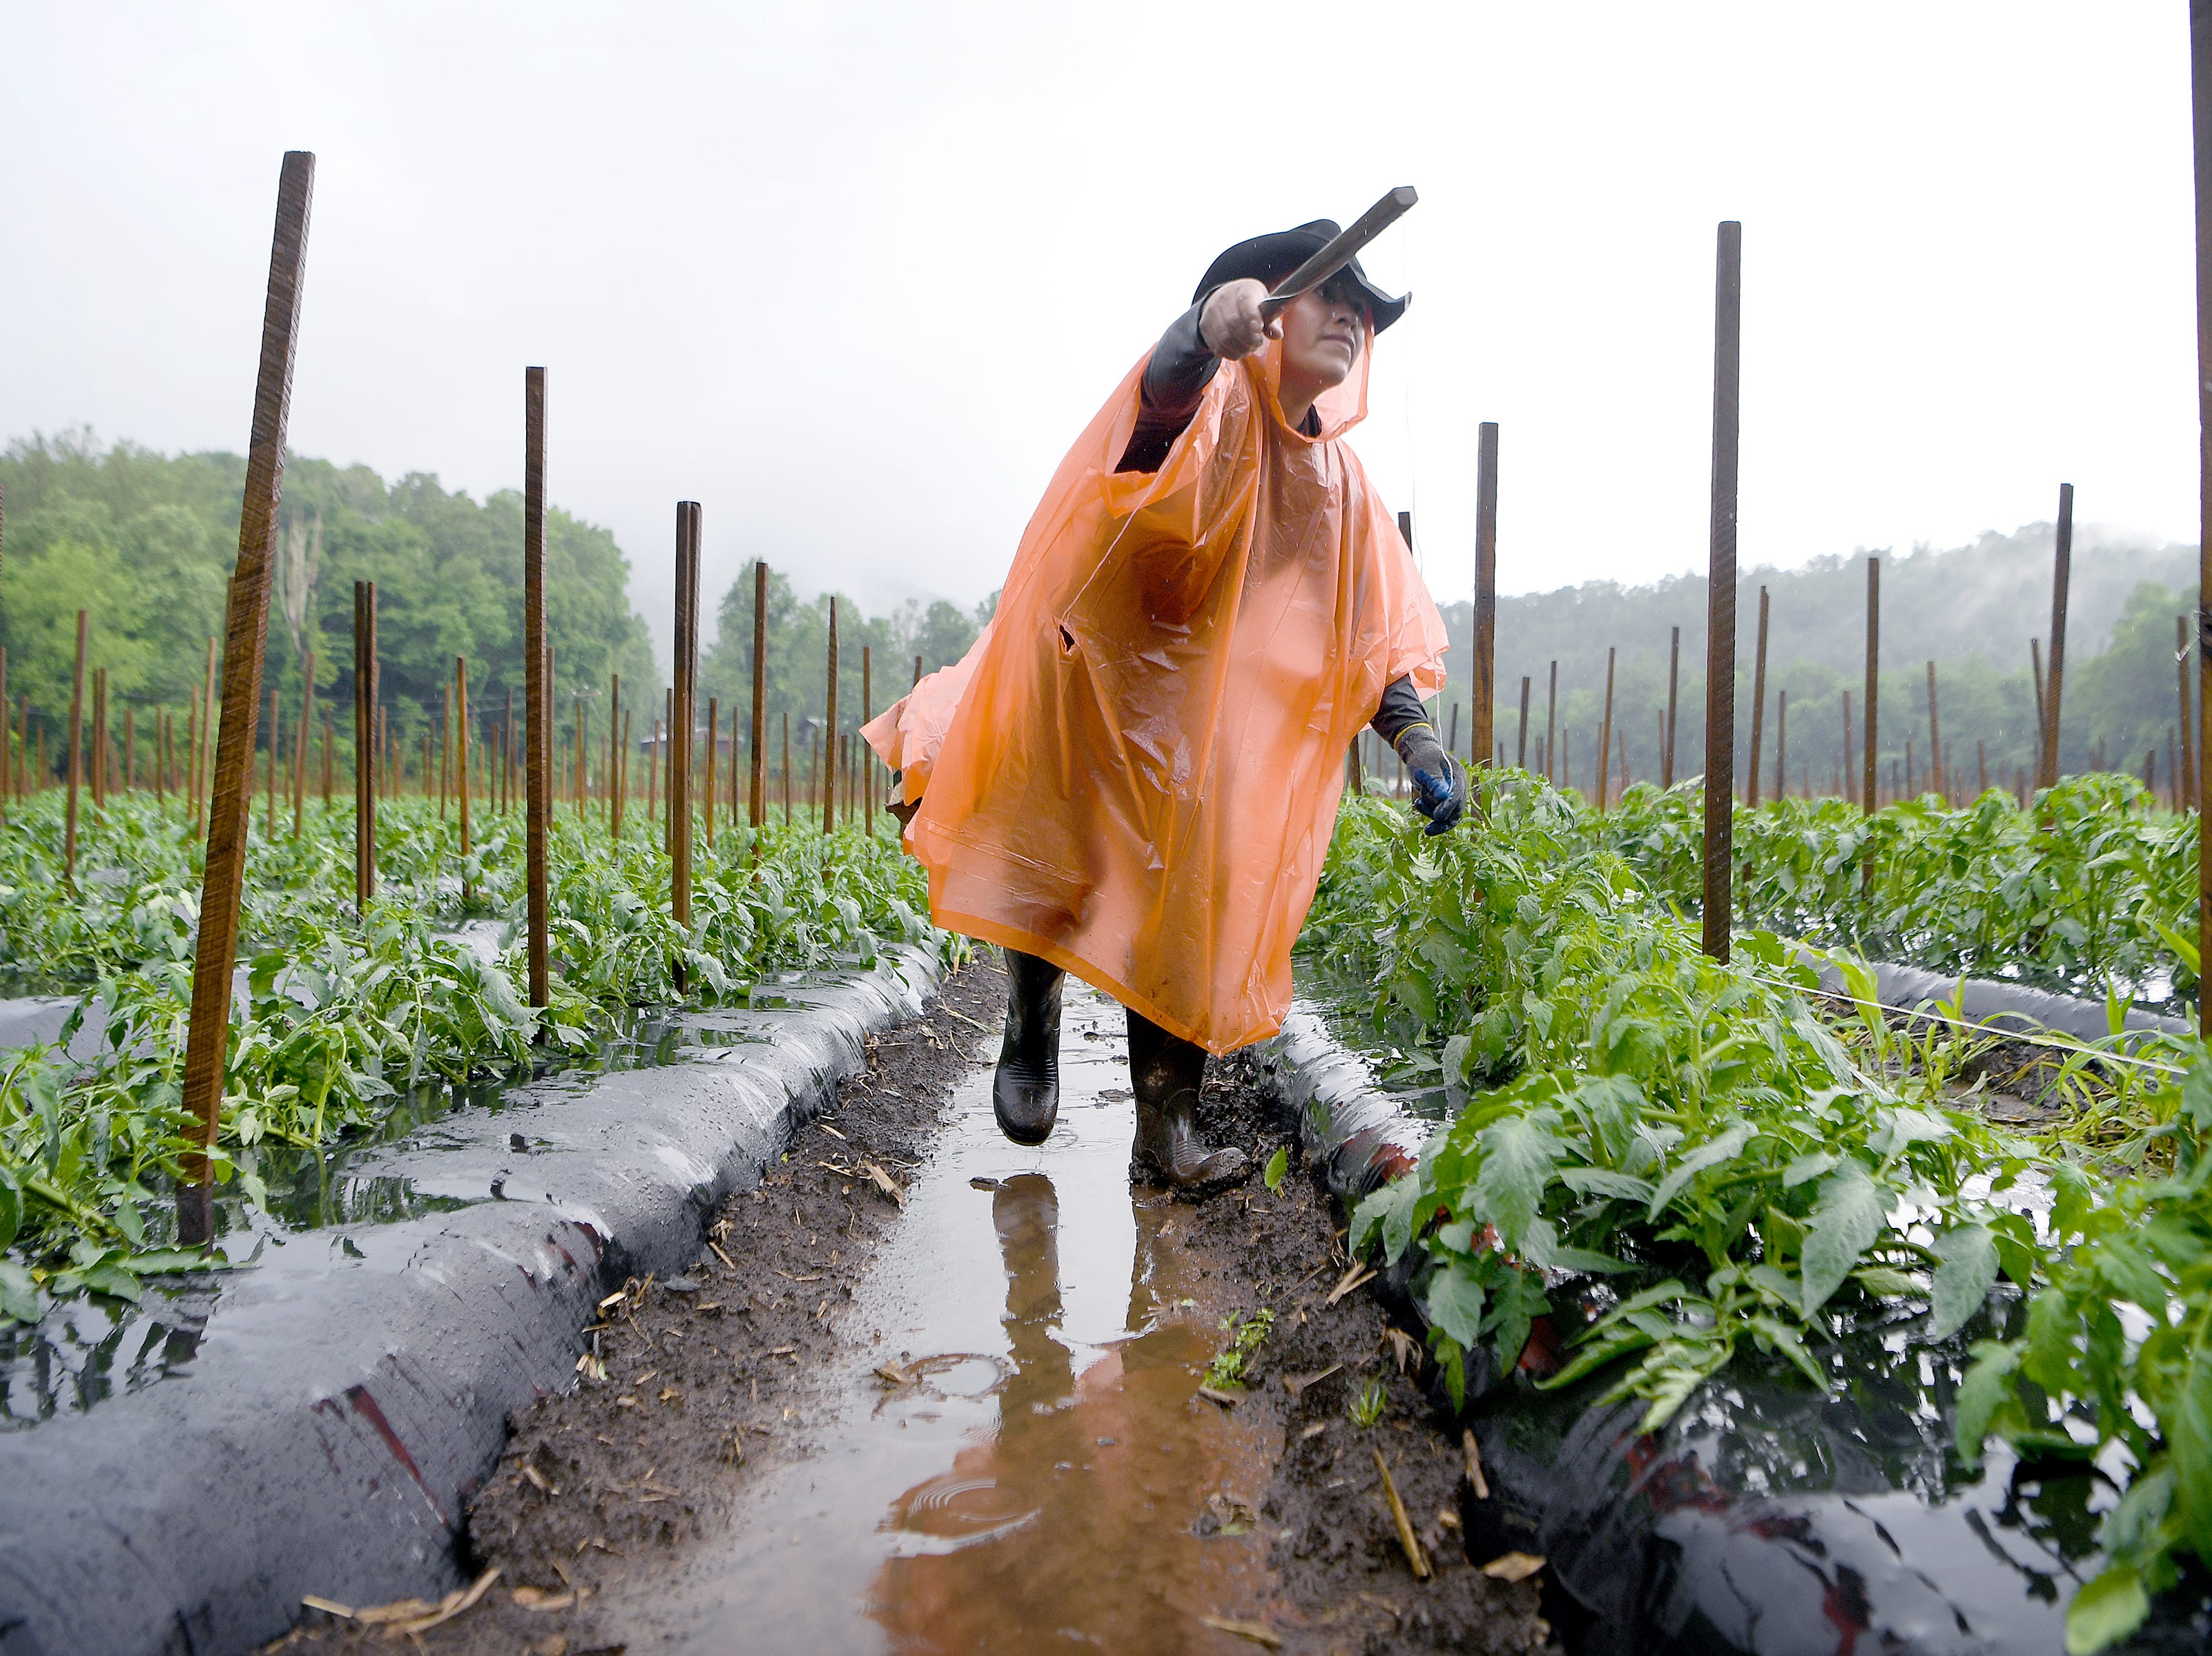 A farmhand ties string to posts to hold up tomato plants on one of Jason Davis, owner of North River Farms', fields in the pouring rain in Mills River on Wednesday, May 30, 2018. Davis said they normally would not work in the rain but consistent heavy rains and flooding has put farmers so far behind schedule they are doing what they can to catch up.